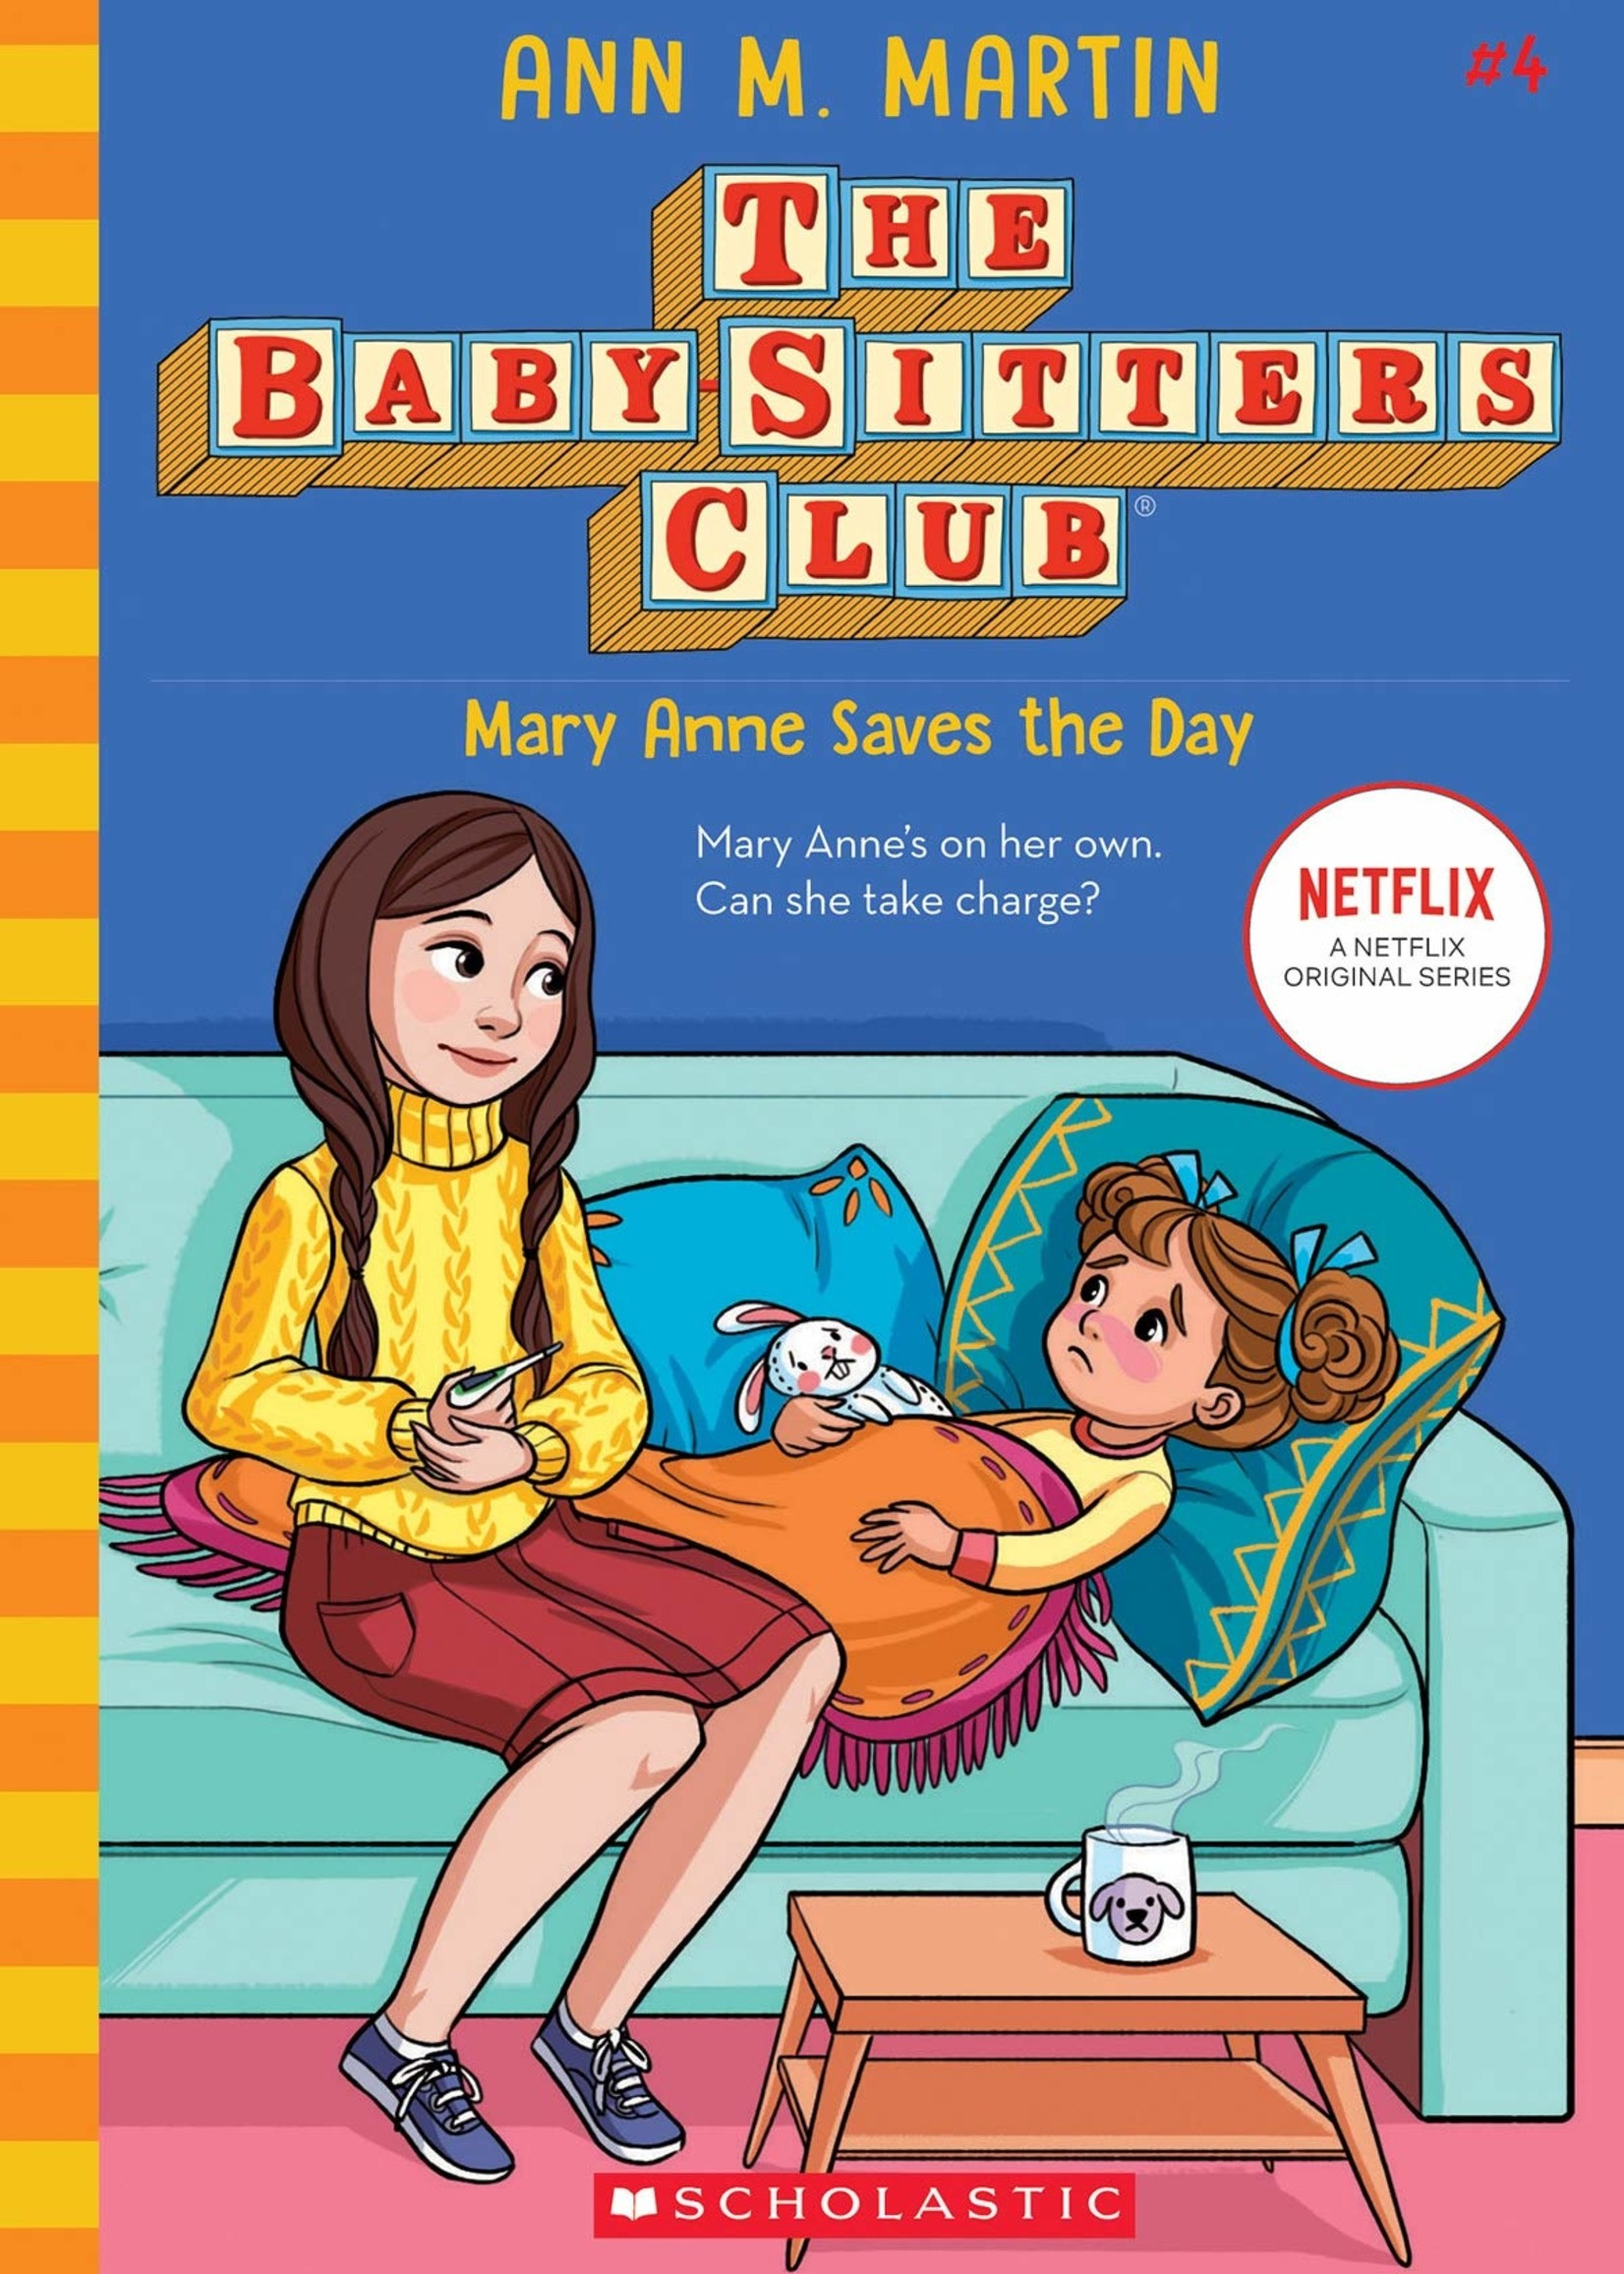 Baby-Sitters Club #04, Mary Anne Saves the Day - Paperback